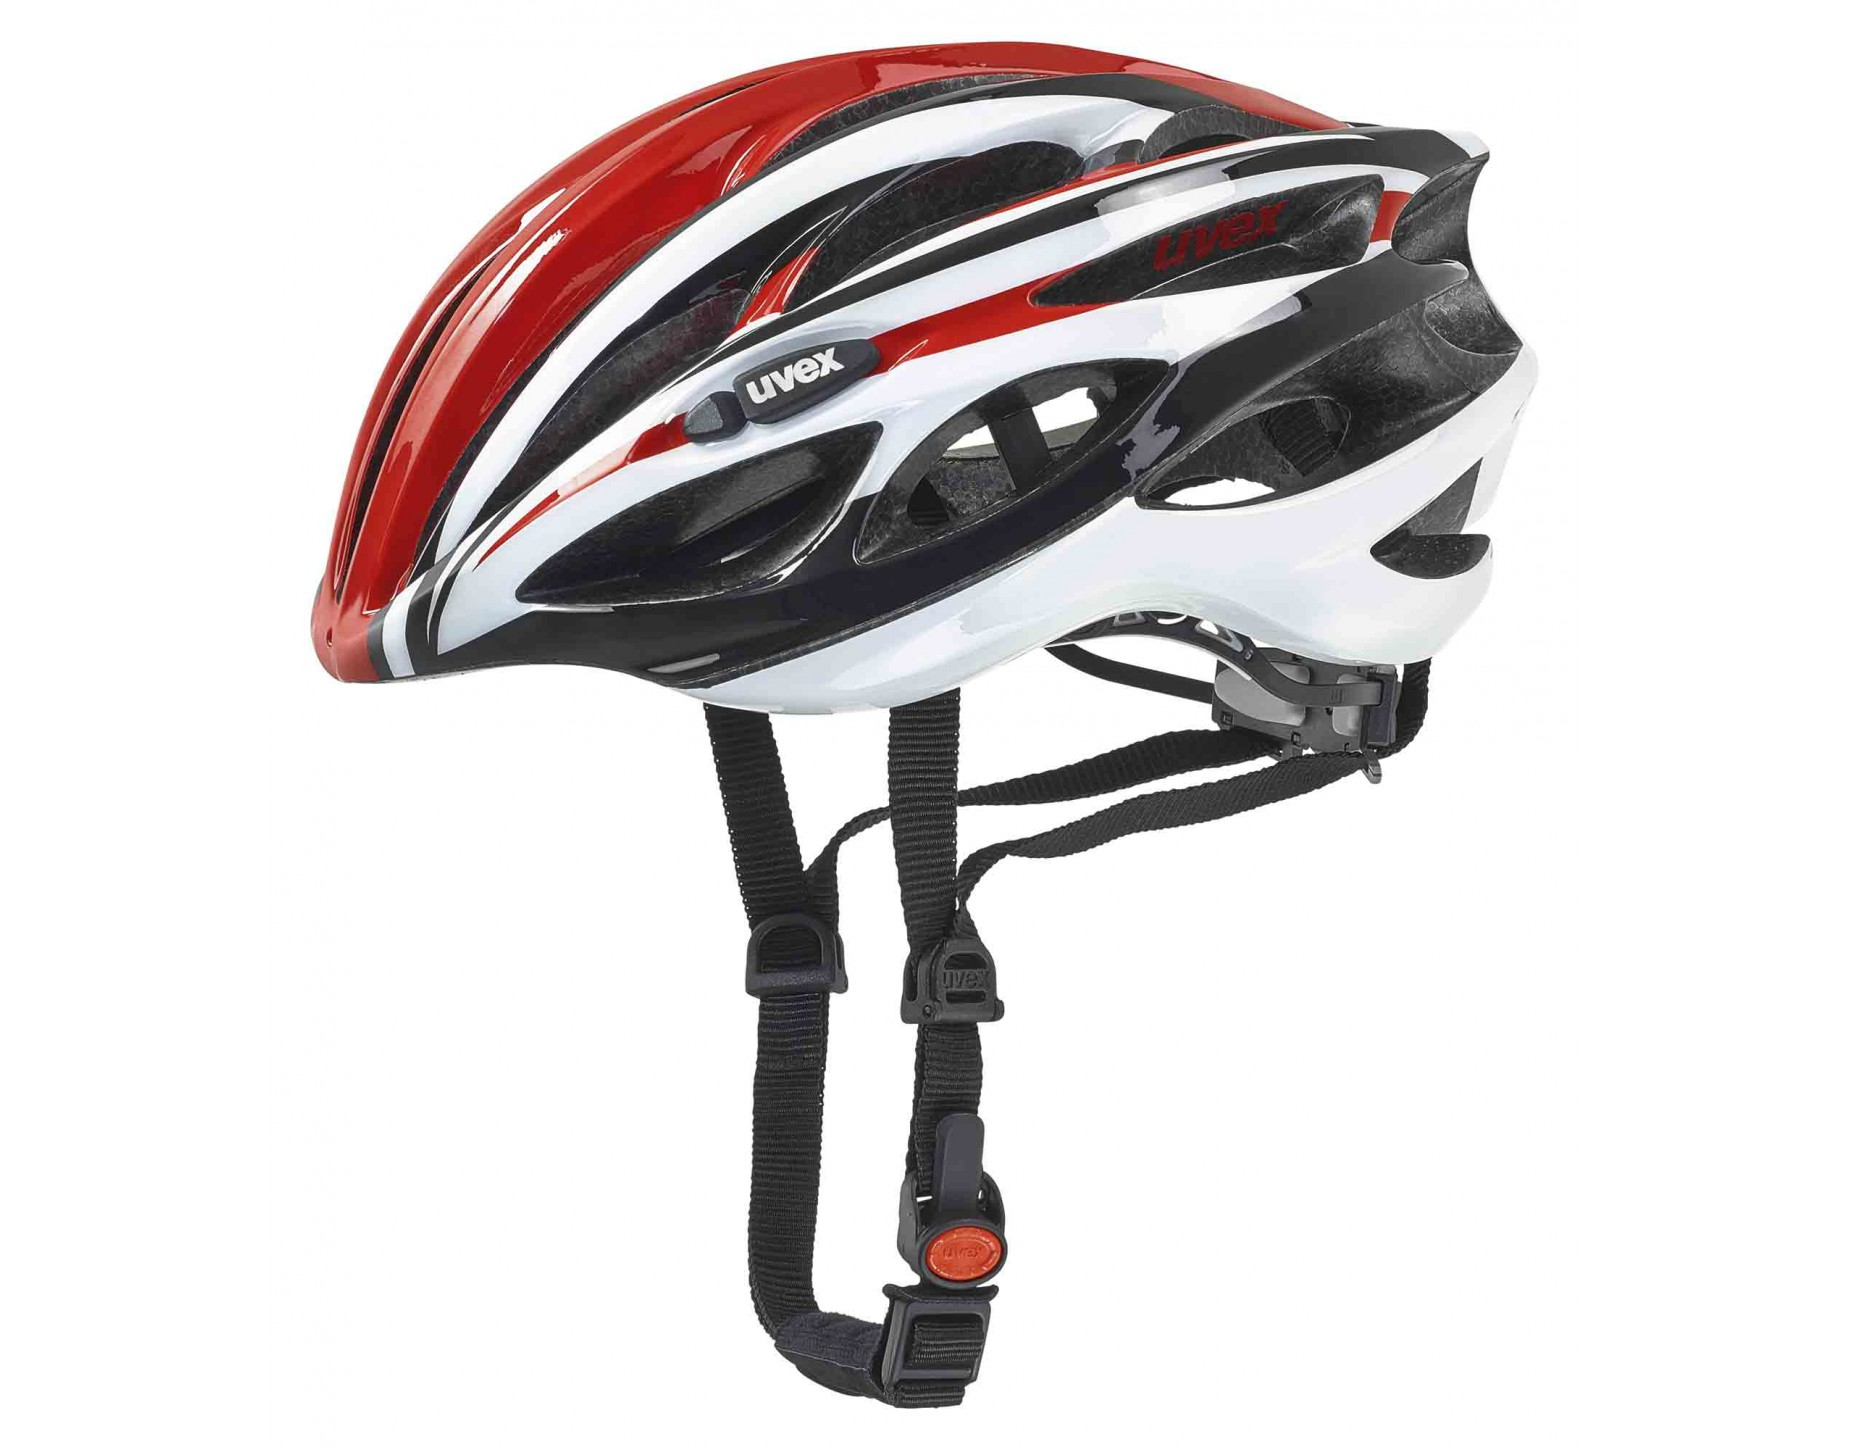 uvex race 1 Helm red white